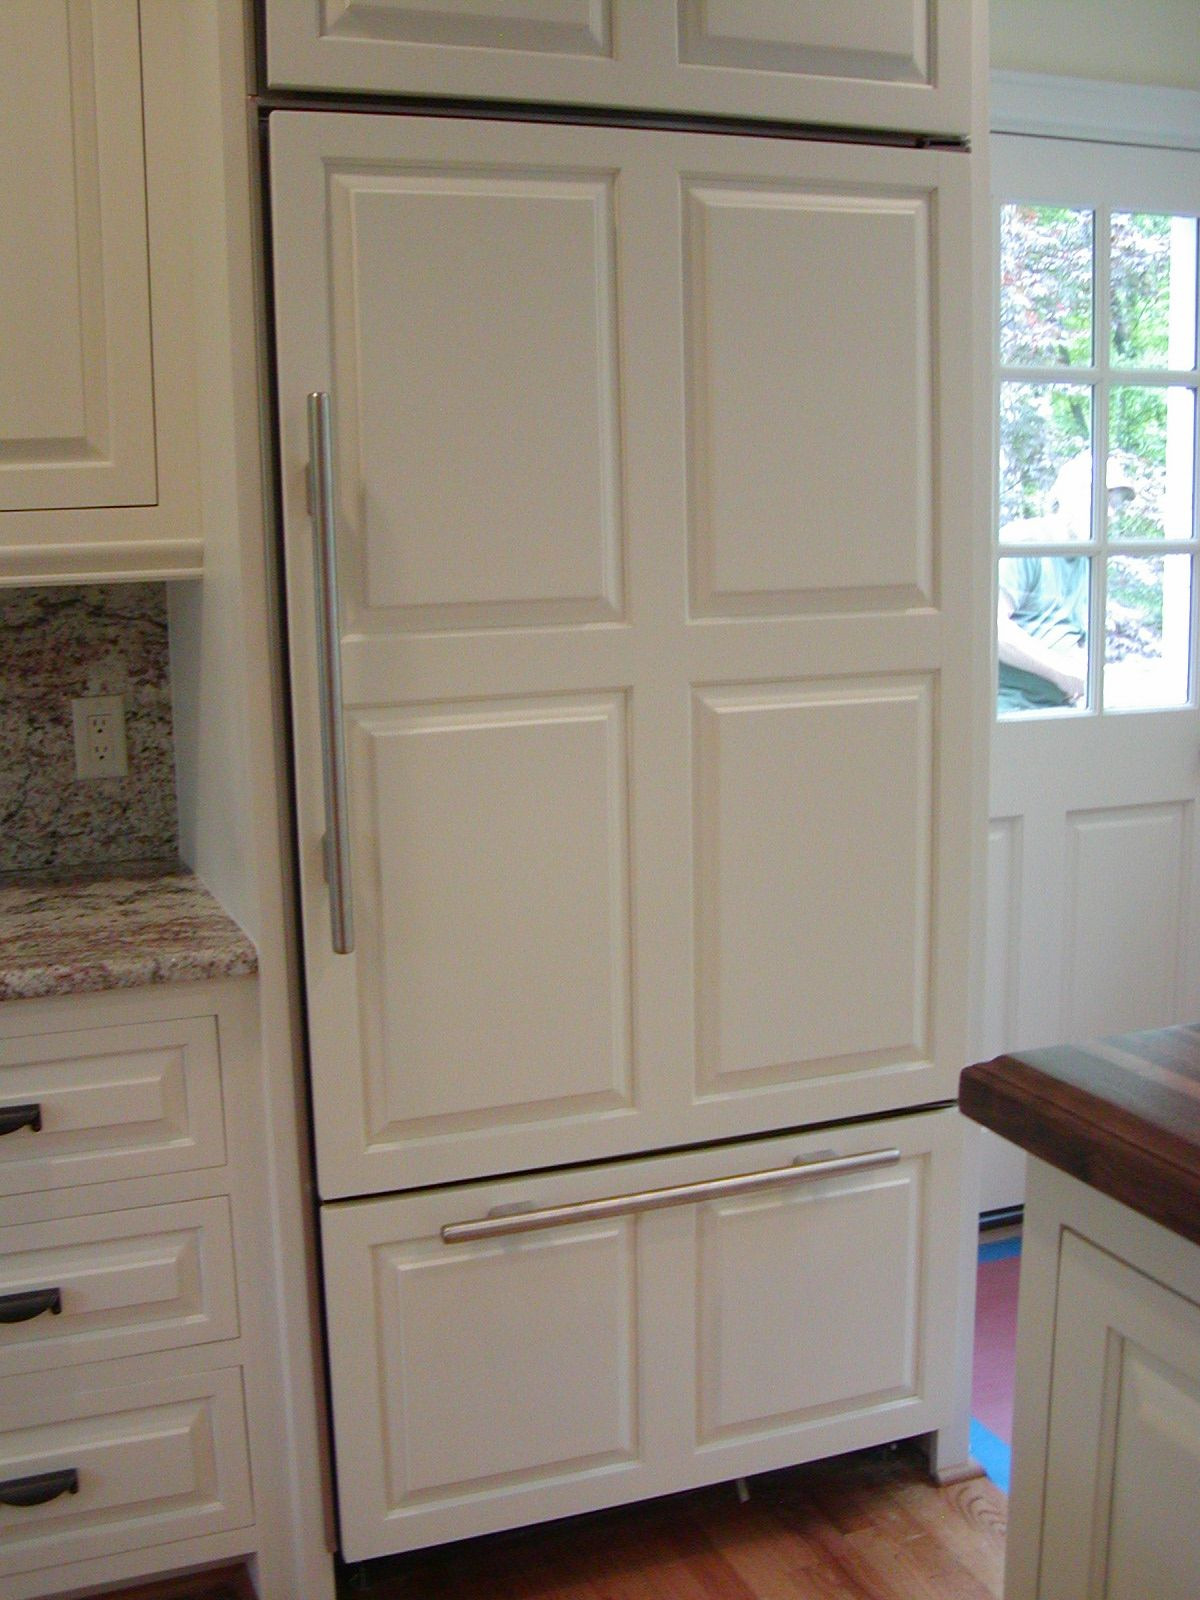 Refrigerator with Cabinet Doors Lovely Refrigerator with Cabinet Door Face